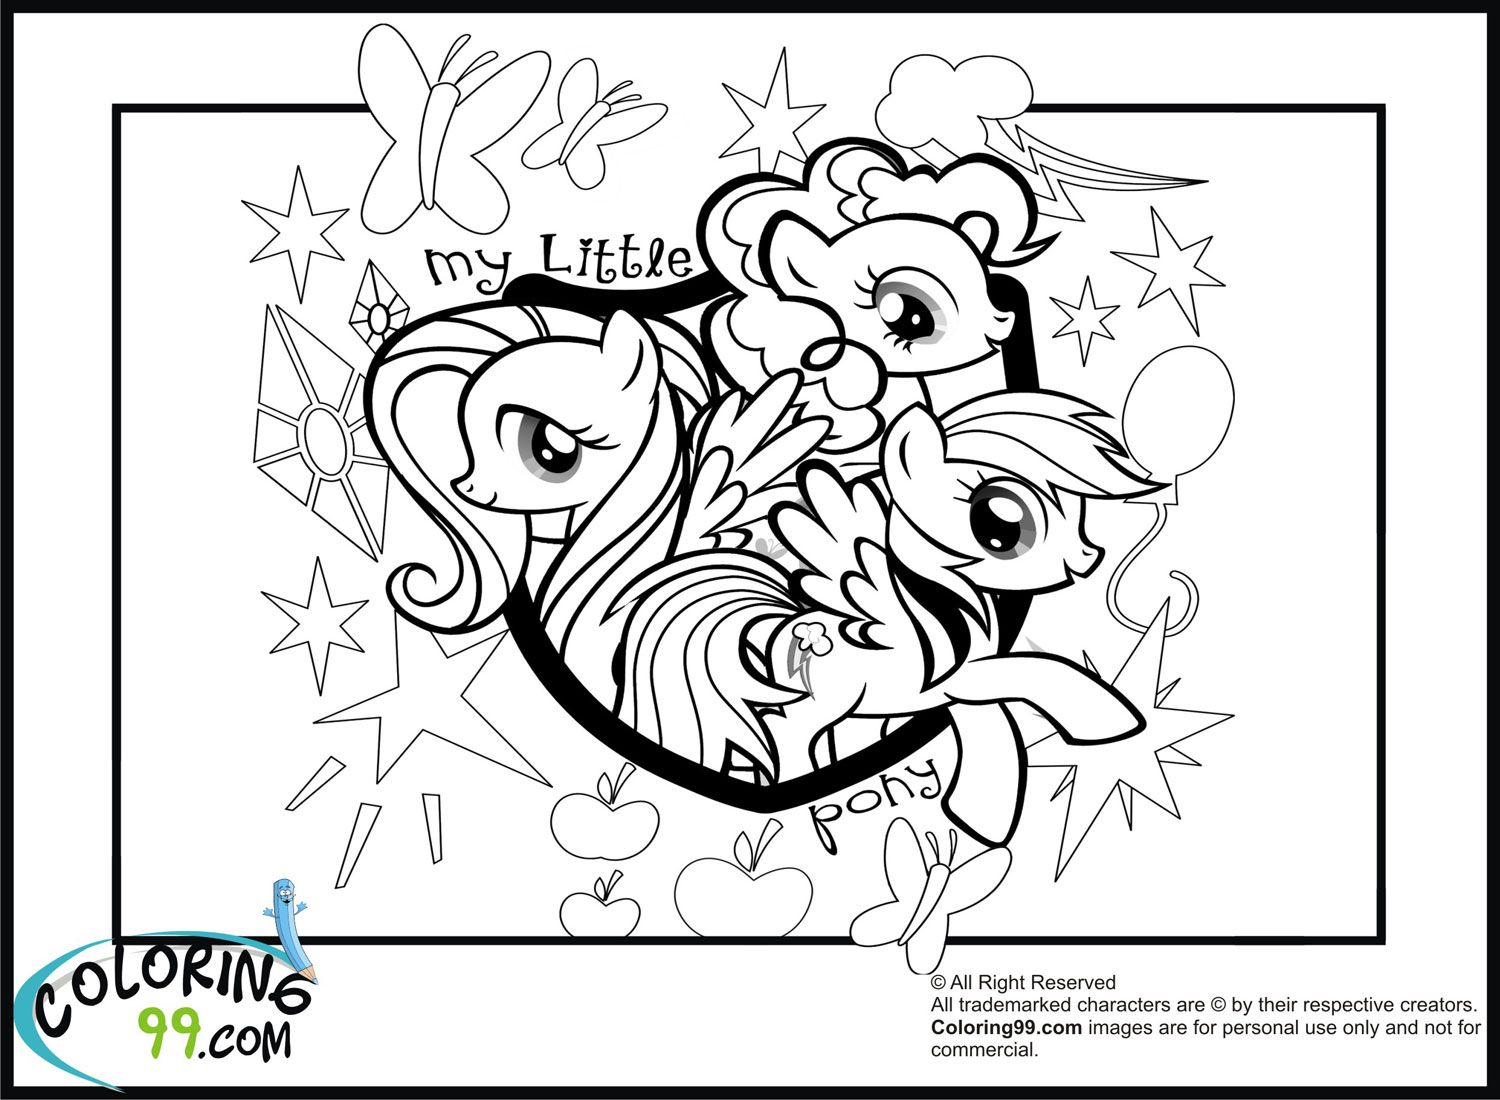 My little pony friendship is magic coloring pages princess cadence - Friendship Is Magic See More My Little Pony Princess Coloring Pages Princess Cadence